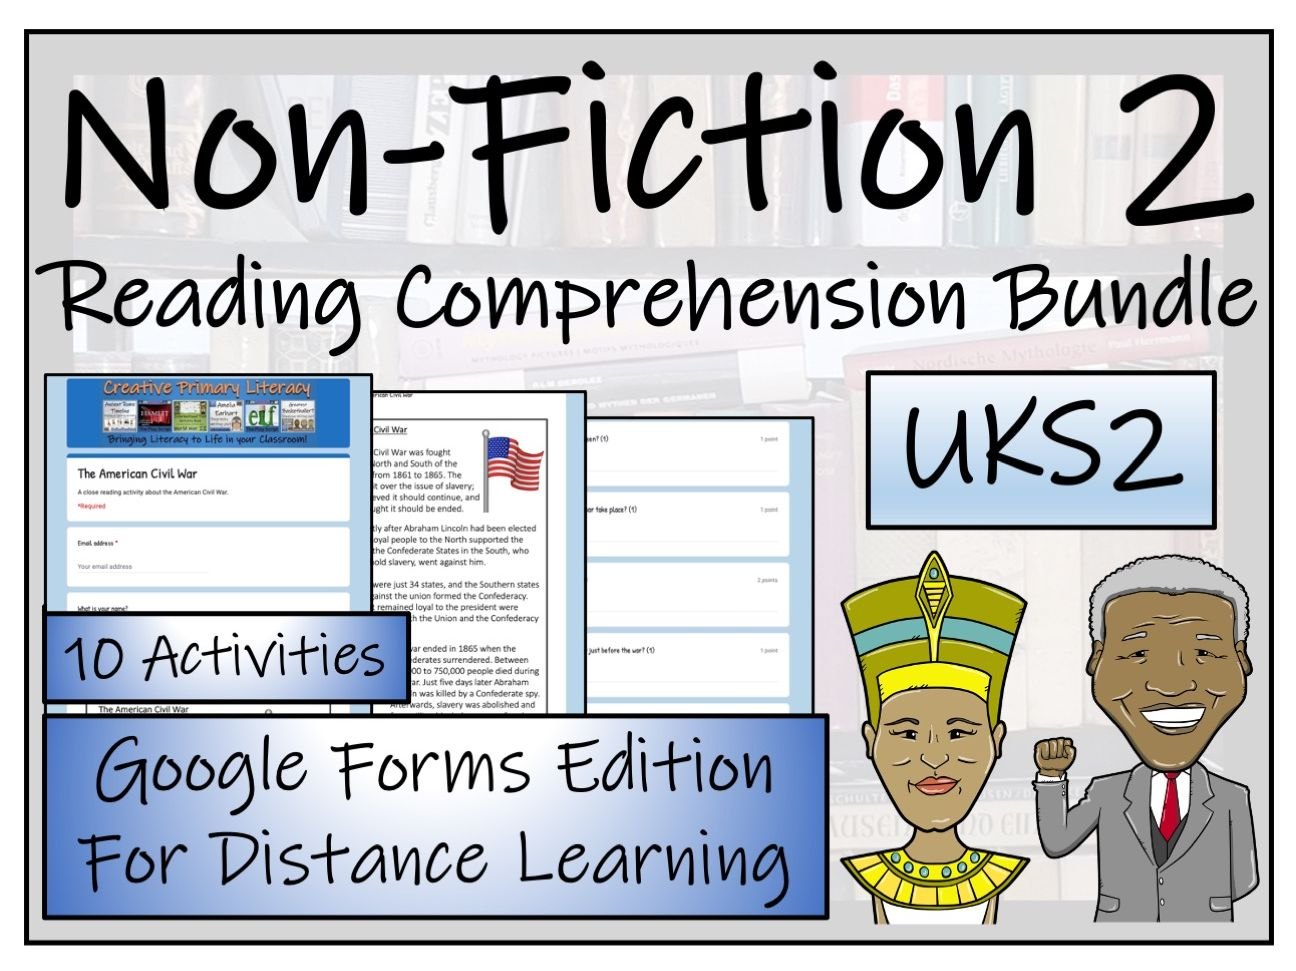 UKS2 Non-Fiction Collection; Volume 2 - Reading Comprehension & Distance Learning Bundle